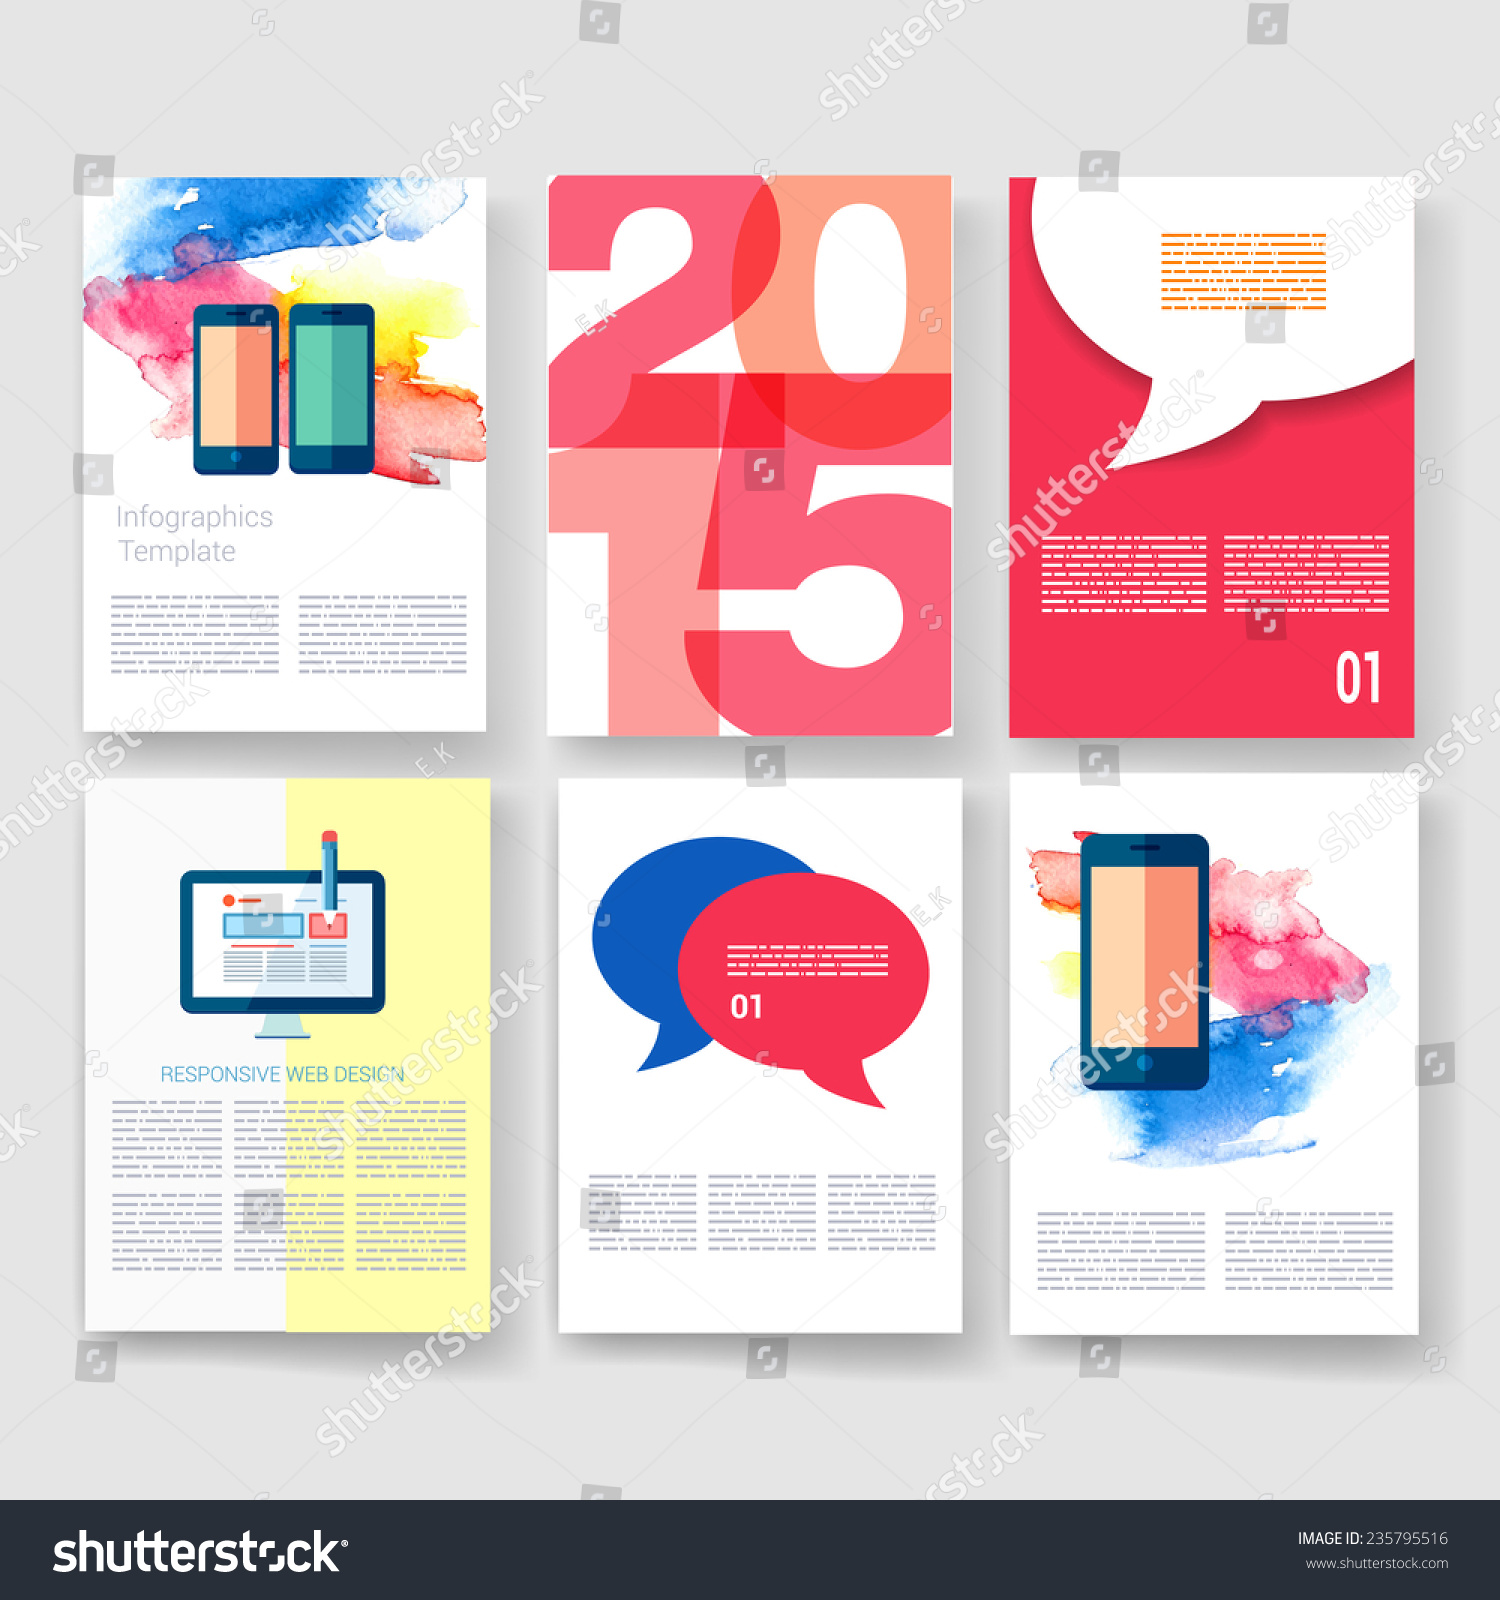 vector brochure design templates collection ad stock vector vector brochure design templates collection ad and infographic concept flyer brochure design templates